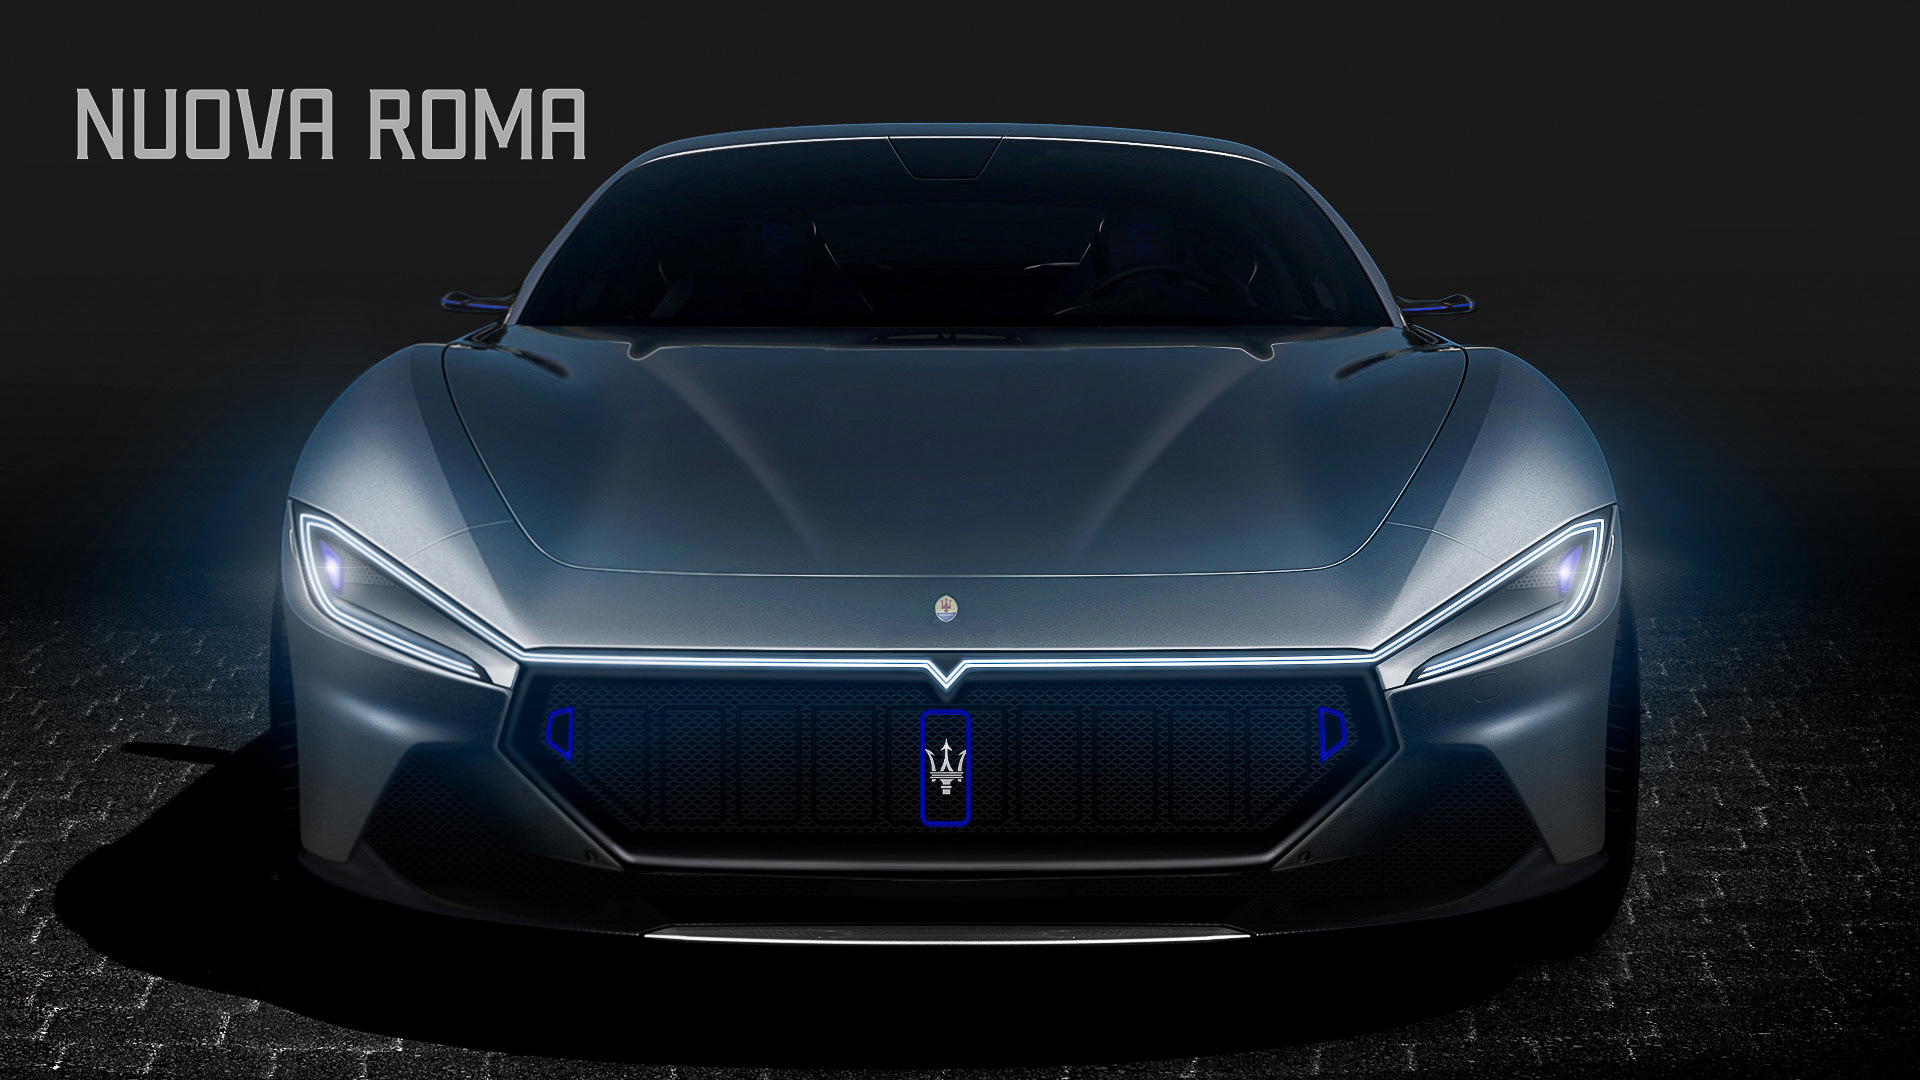 5 Maserati GranTurismo Imagined With Ferrari Roma Styling